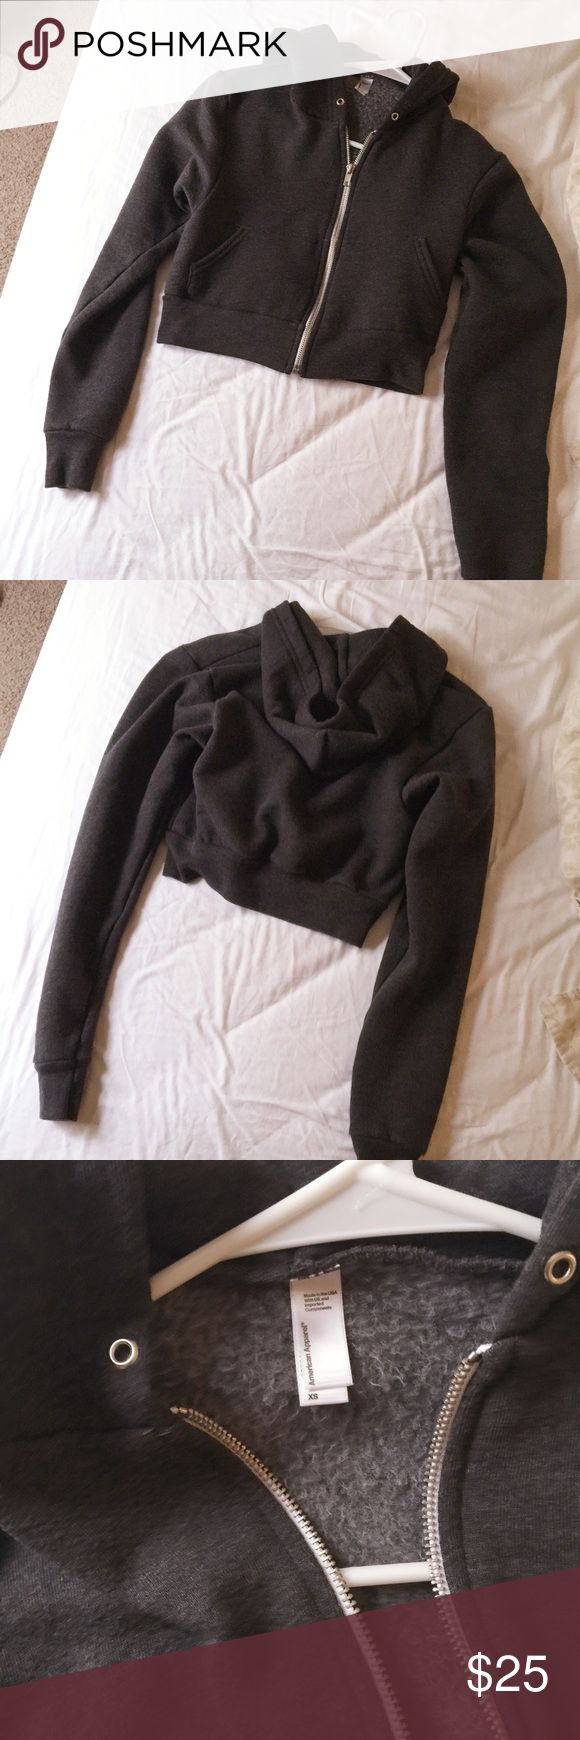 American Apparel cropped flex fleece zip hoodie Worn once, in excellent condition.(string is missing). Size: XS. American Apparel Jackets & Coats